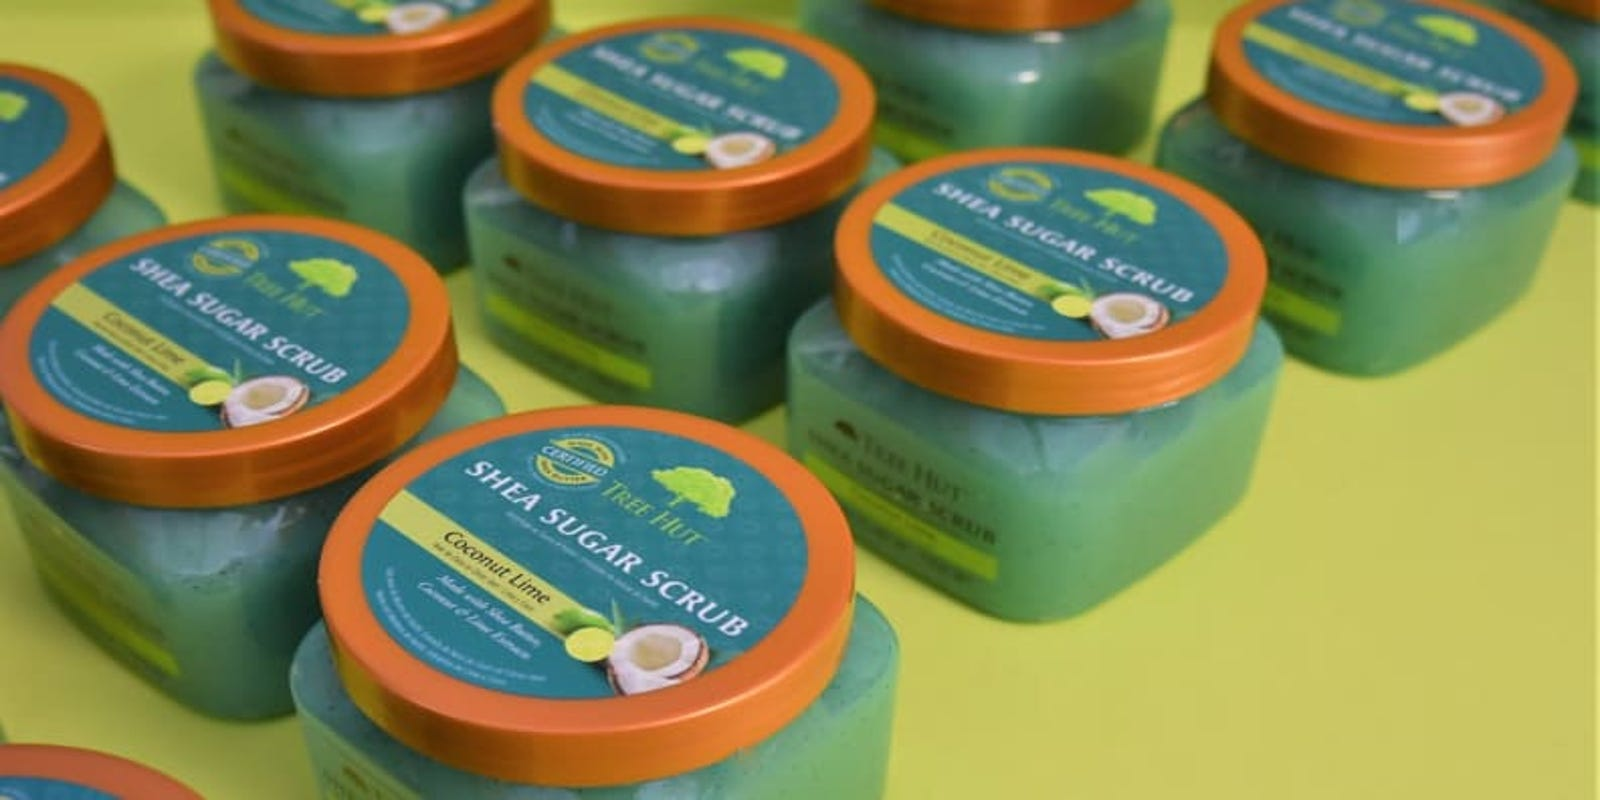 Tree Hut's cult-favorite sugar scrub is on sale for $7 right now